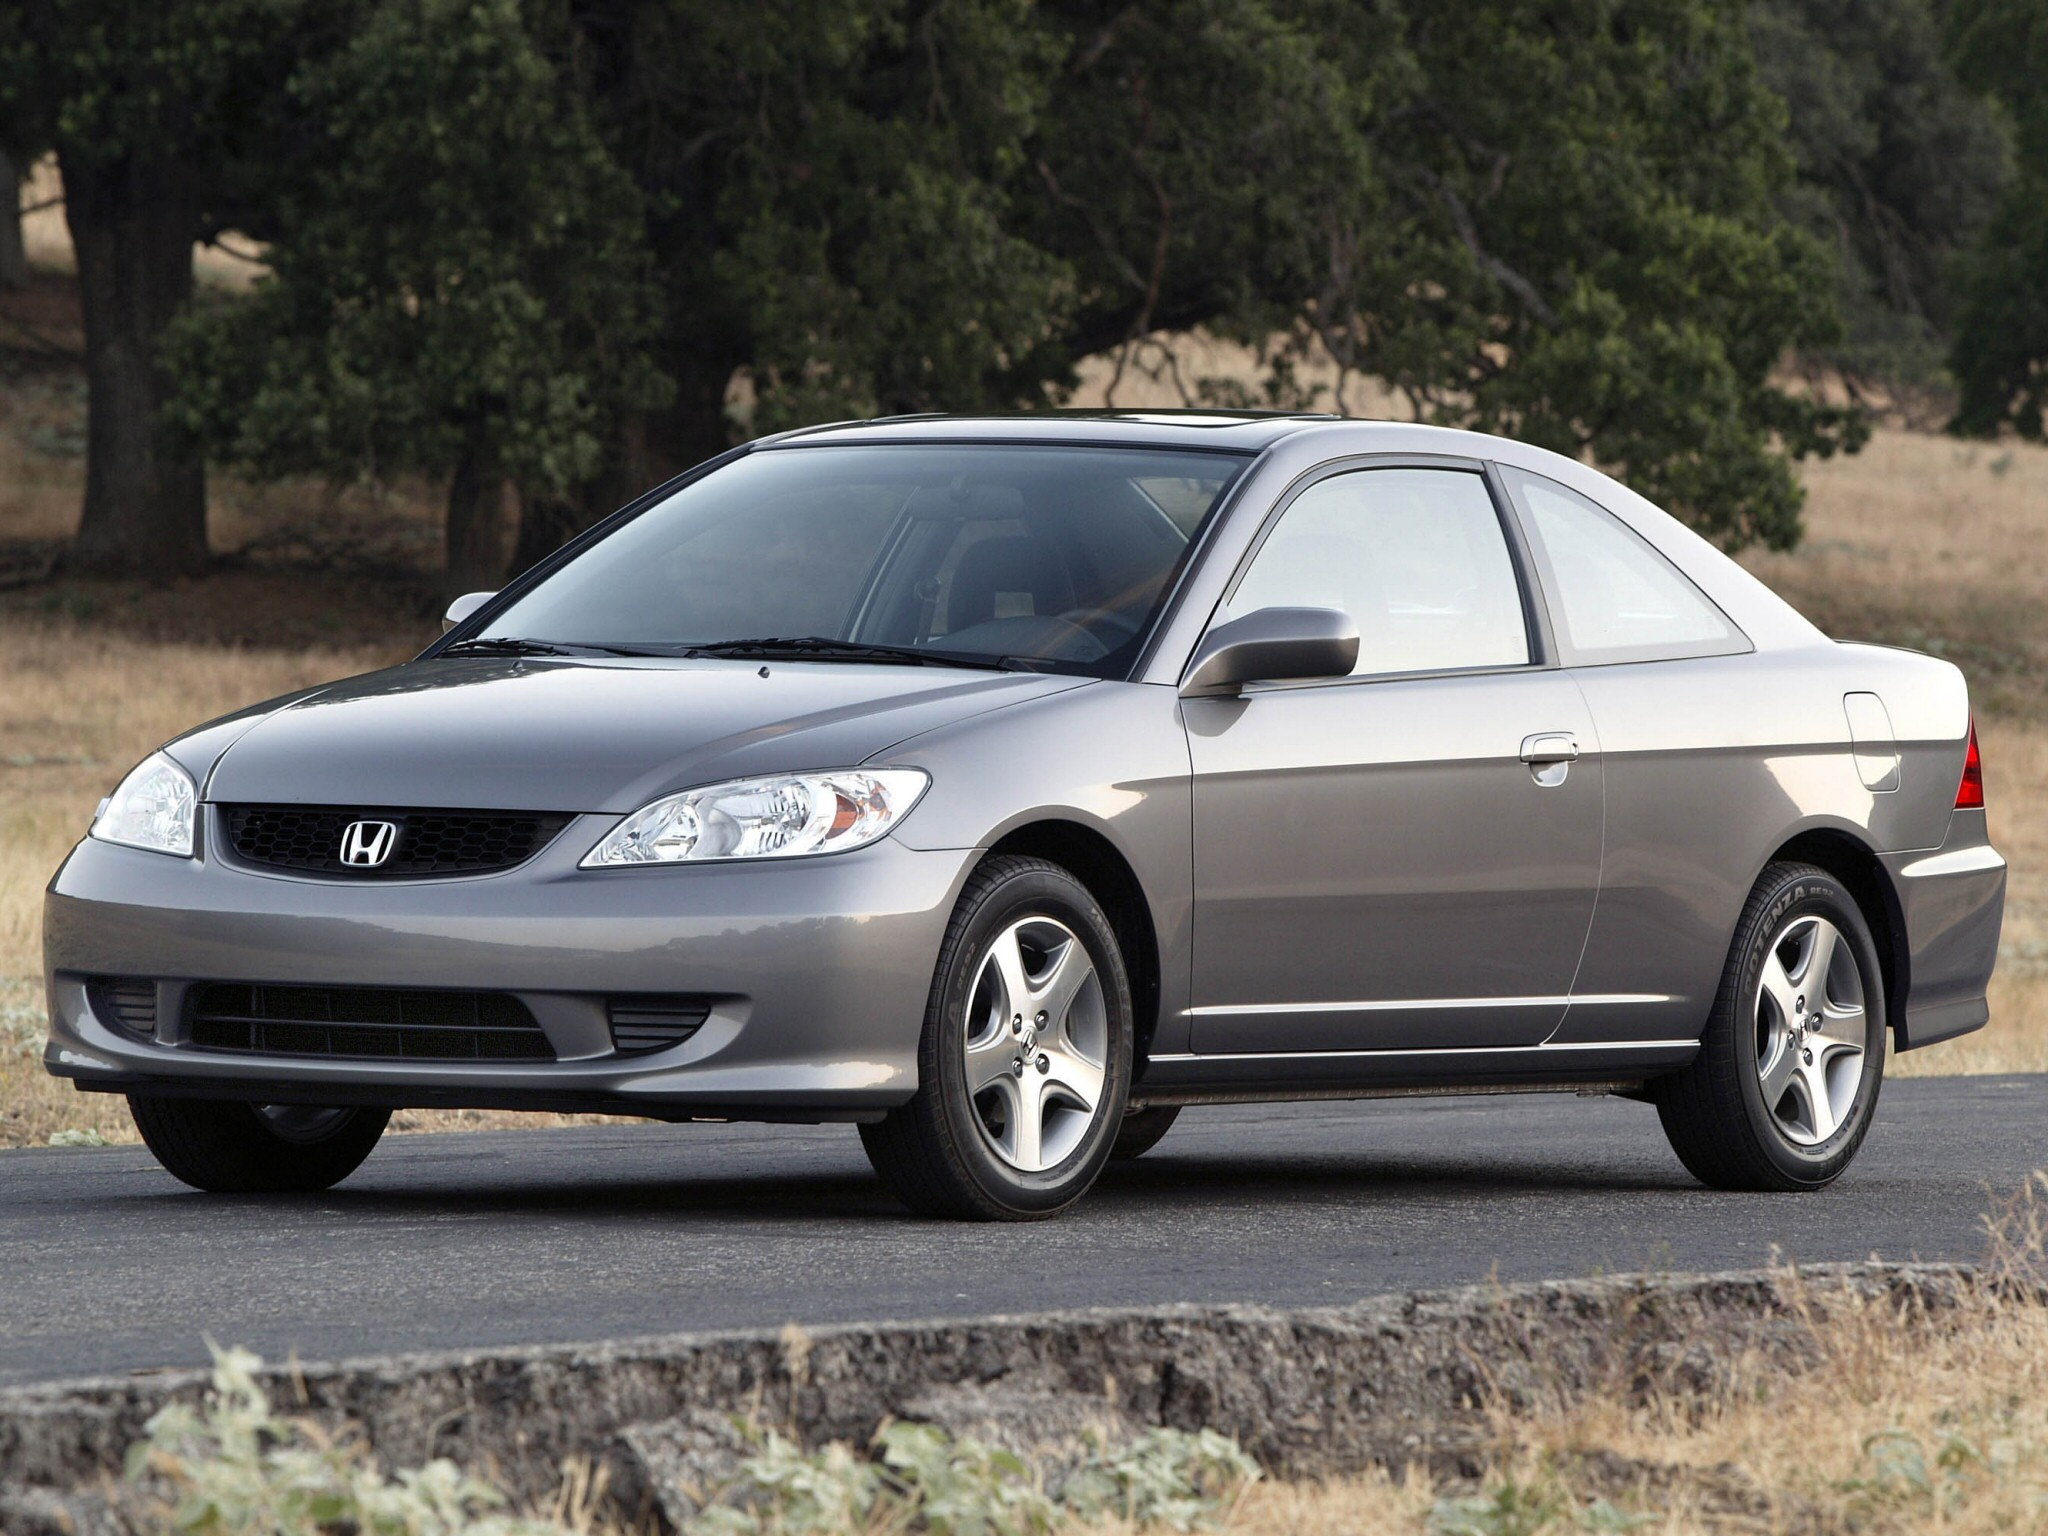 Used Honda Civic coupe Wallpaper Gallery Free